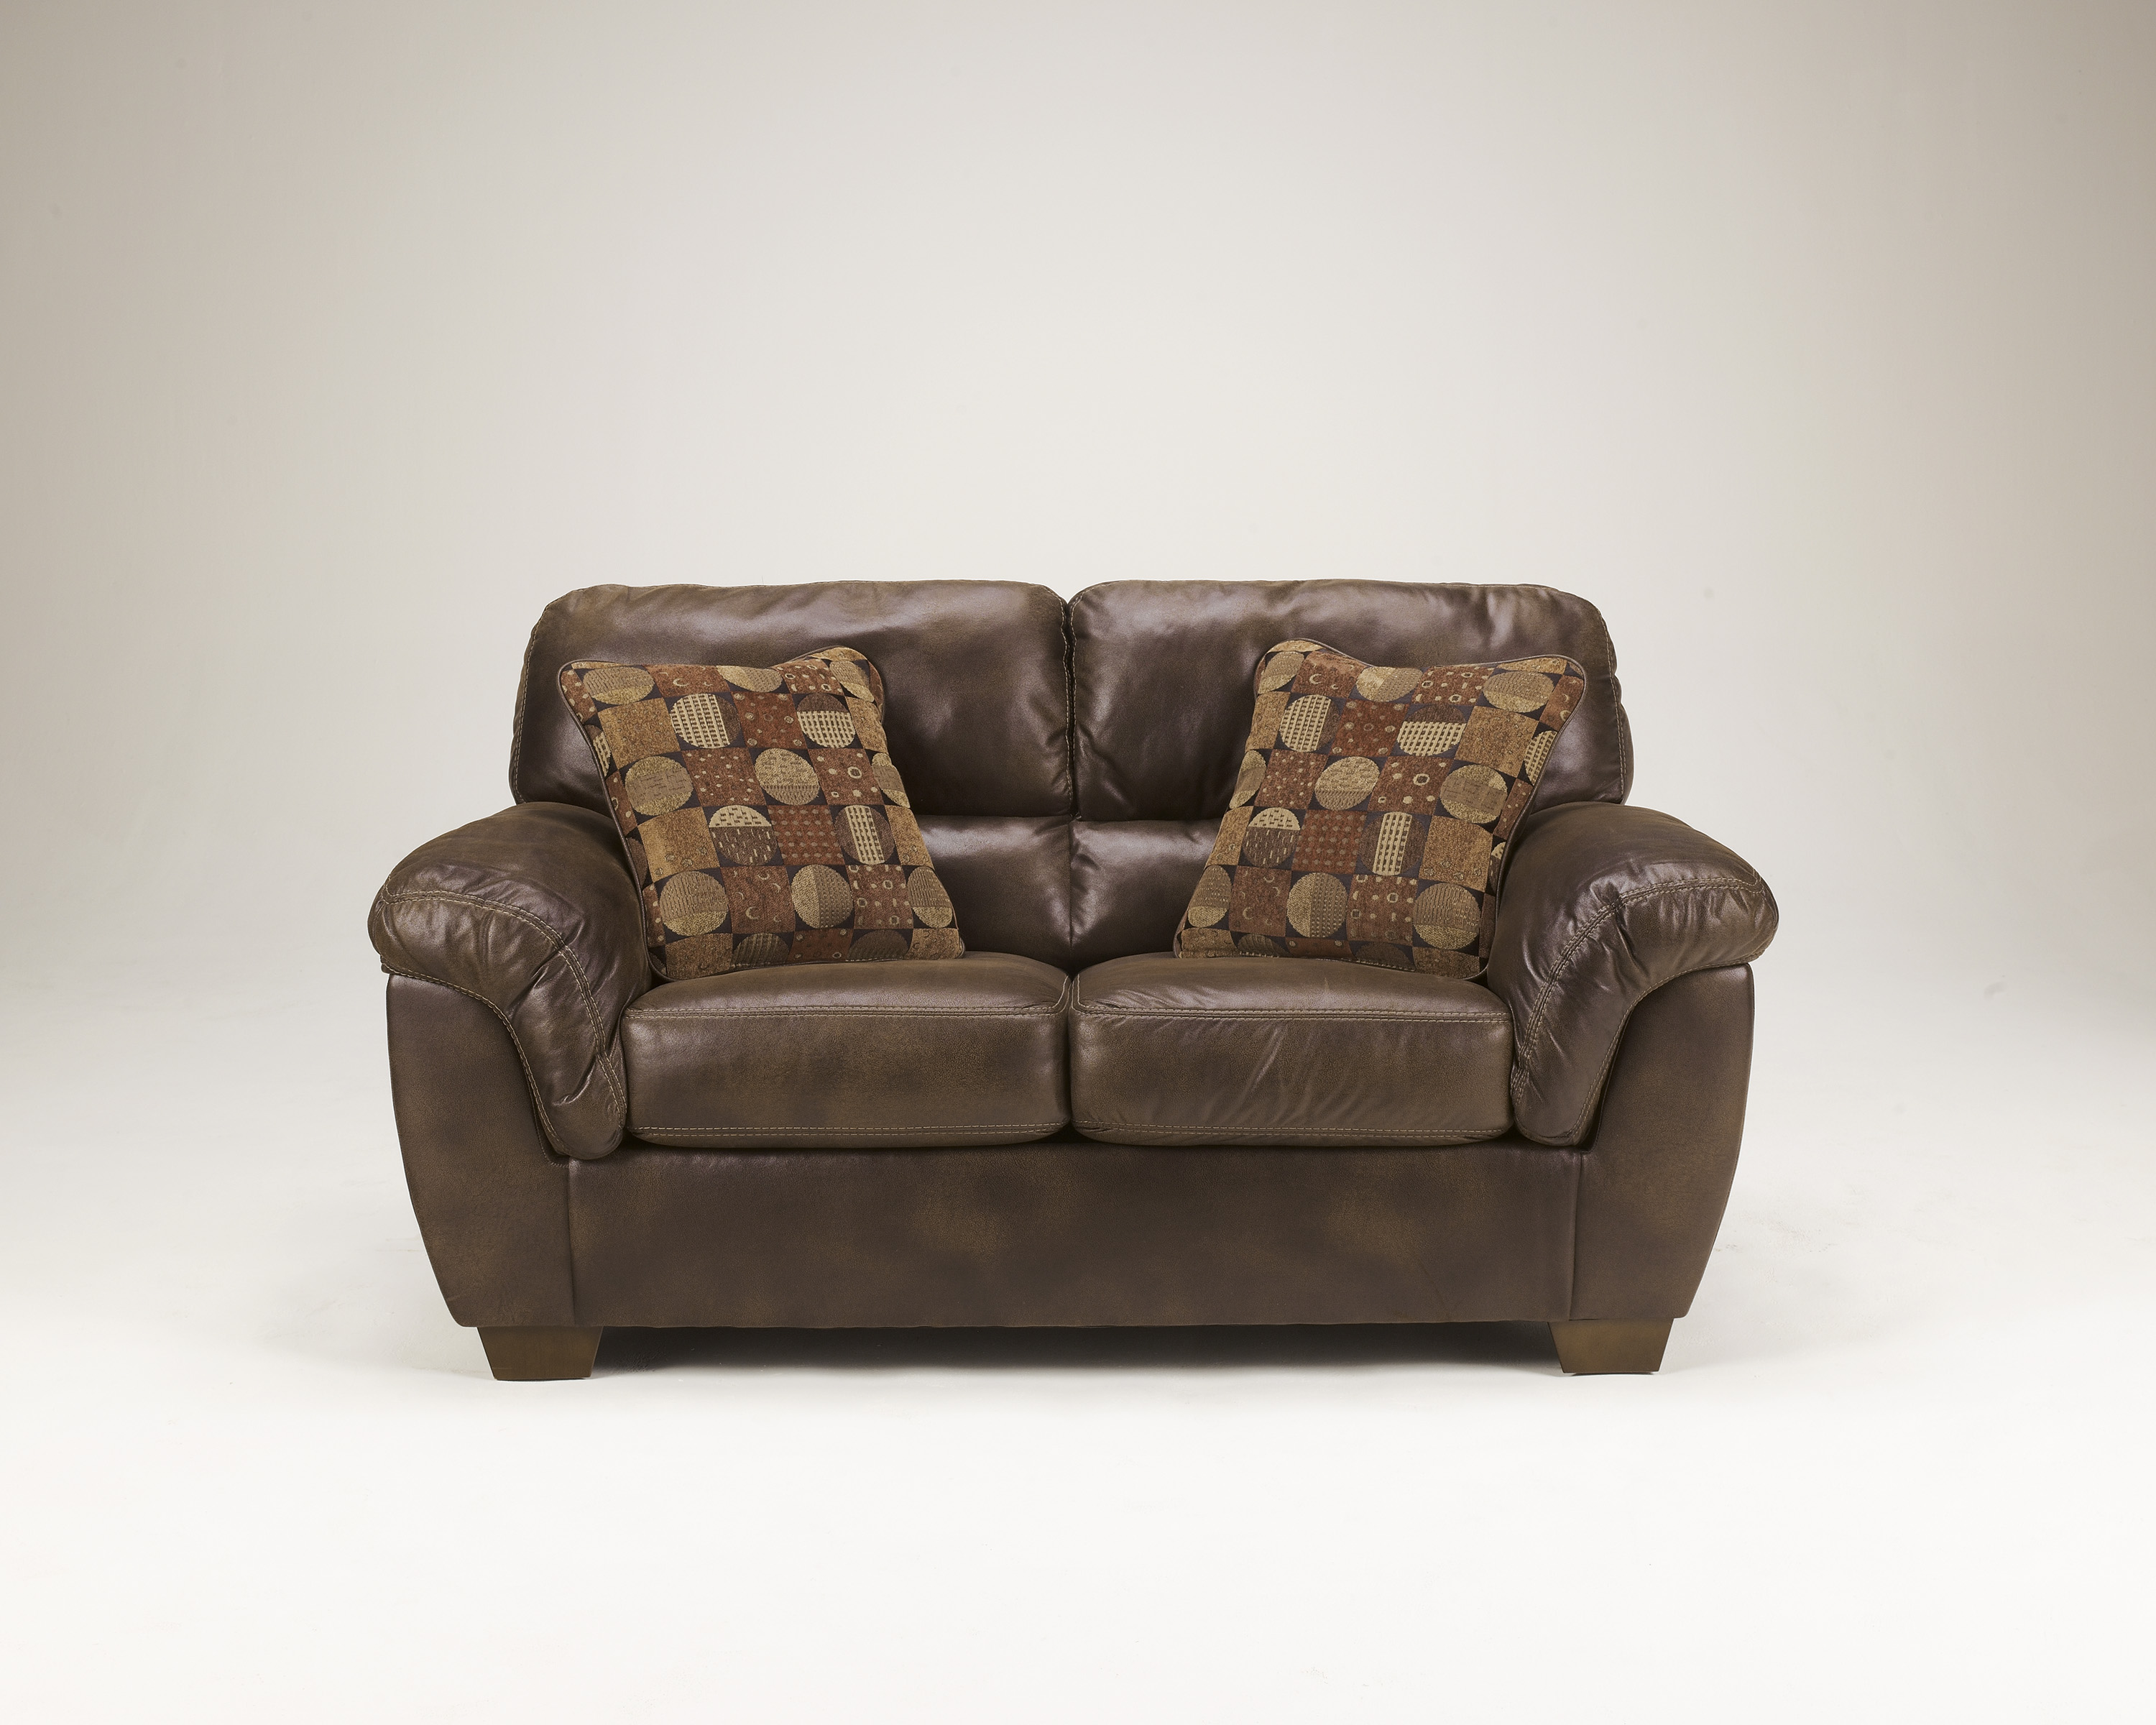 Amazon Walnut Sofa And Loveseat Set Clearance Sale Limited Quantities Marjen Of Chicago